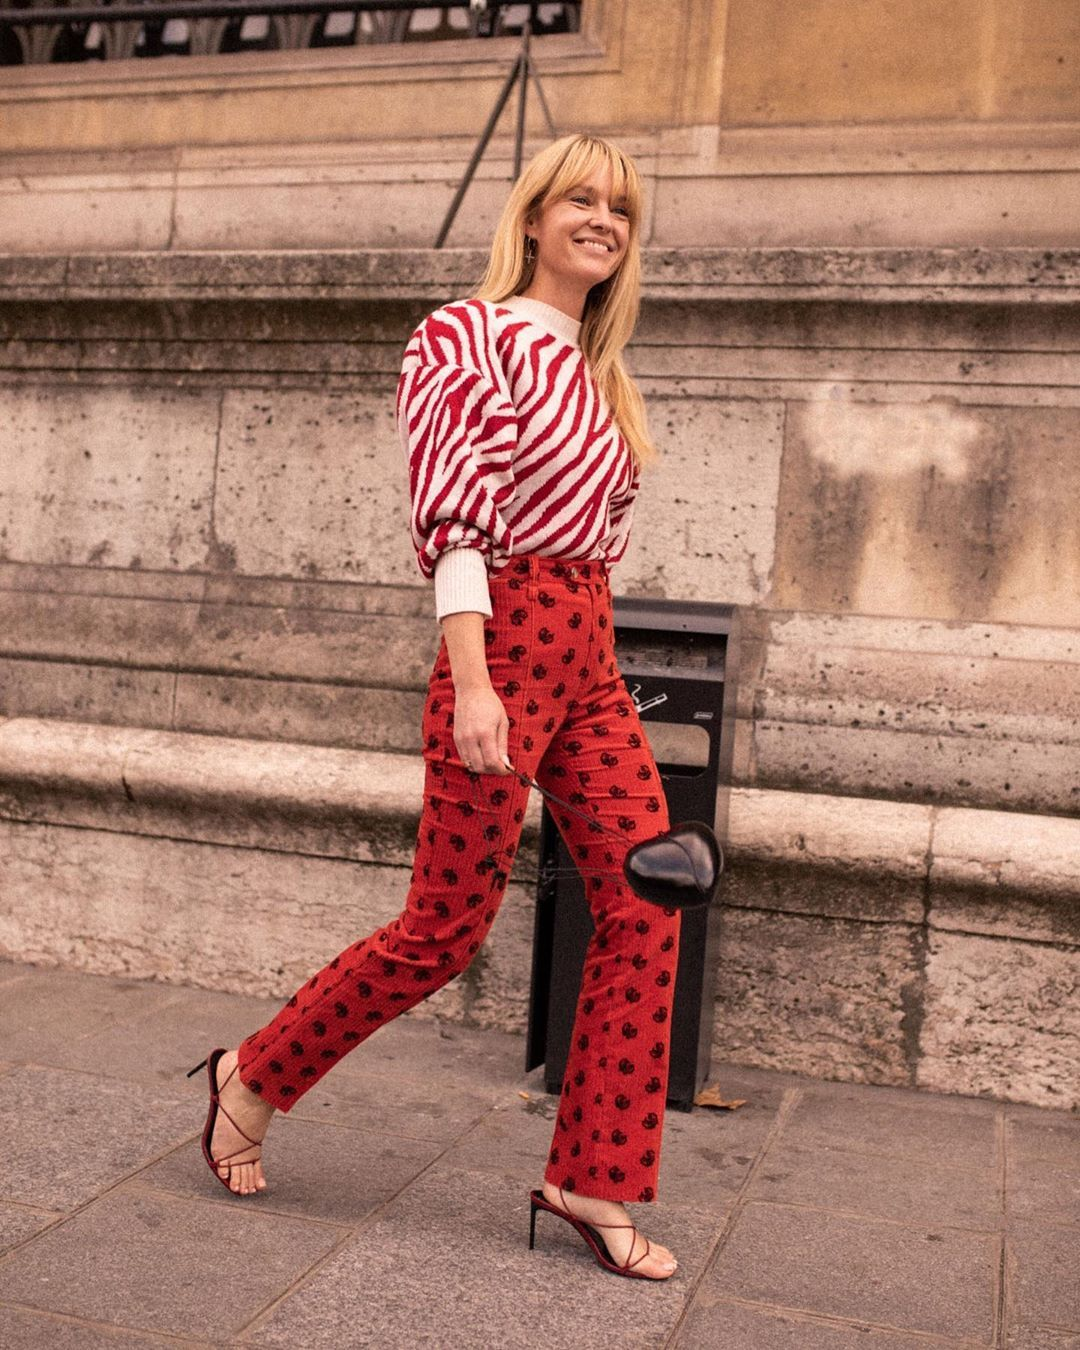 jeanette-madsen-zebra-print-sweater-outfit-street-style-fall-2019